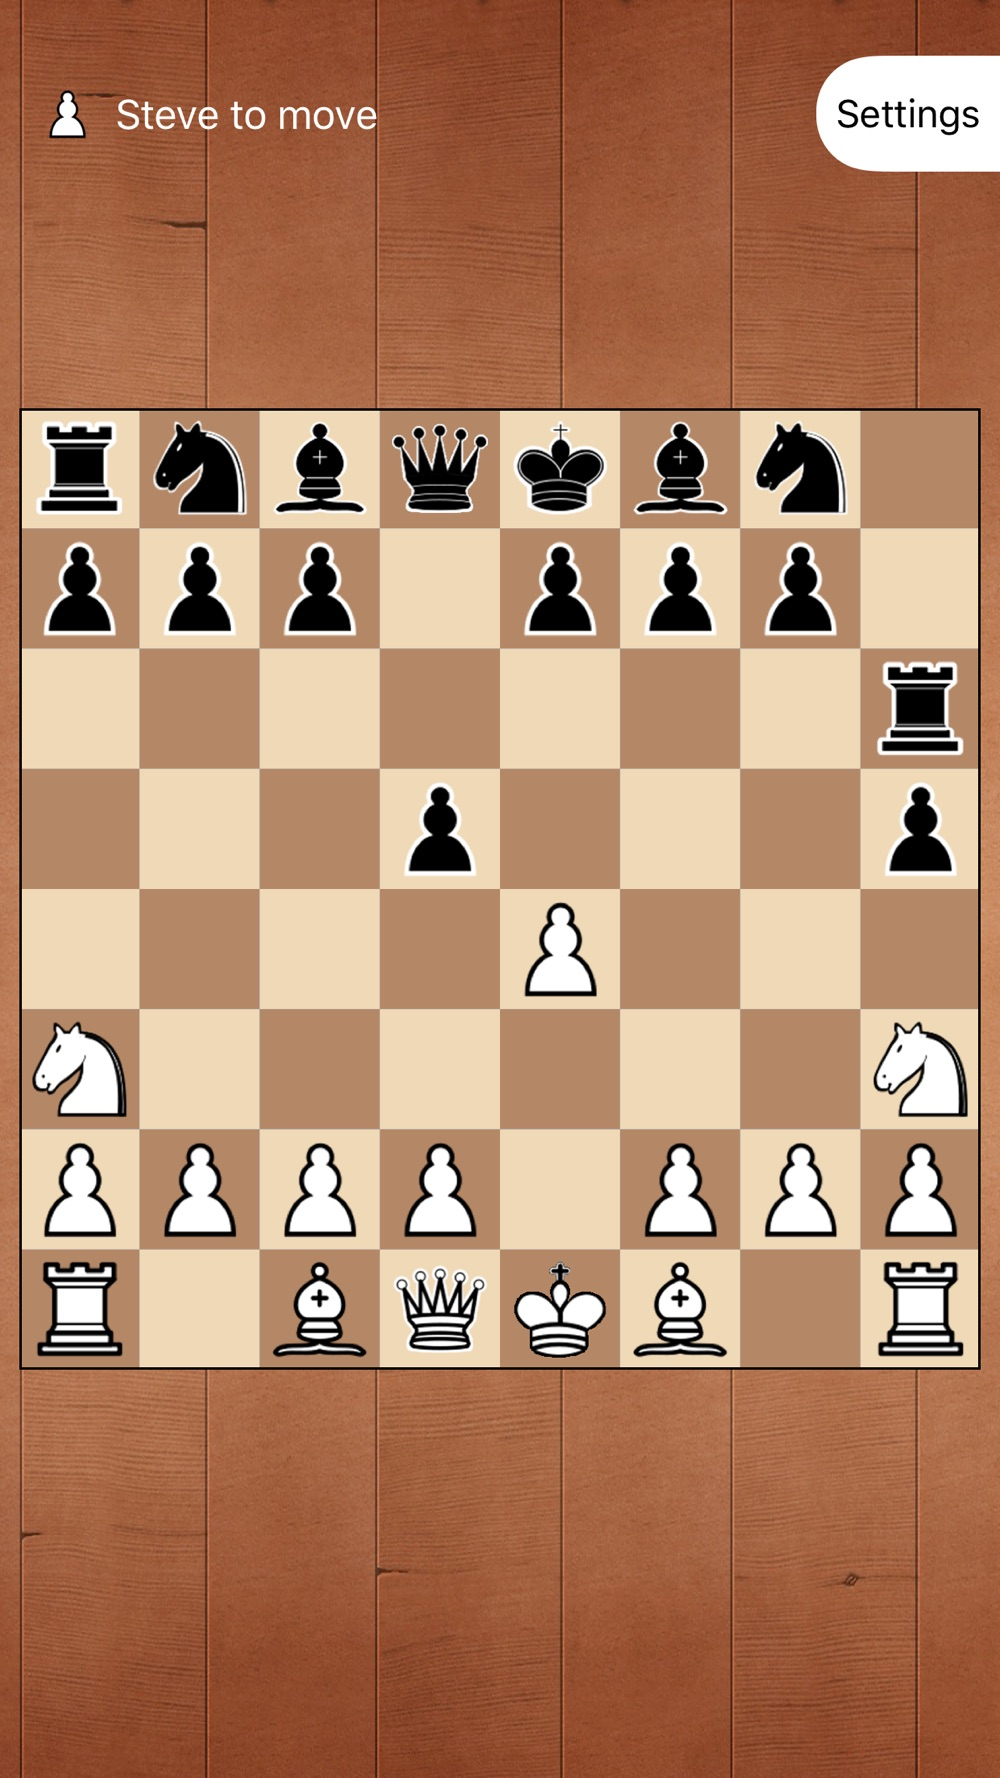 Hack tool for Pocket Chess